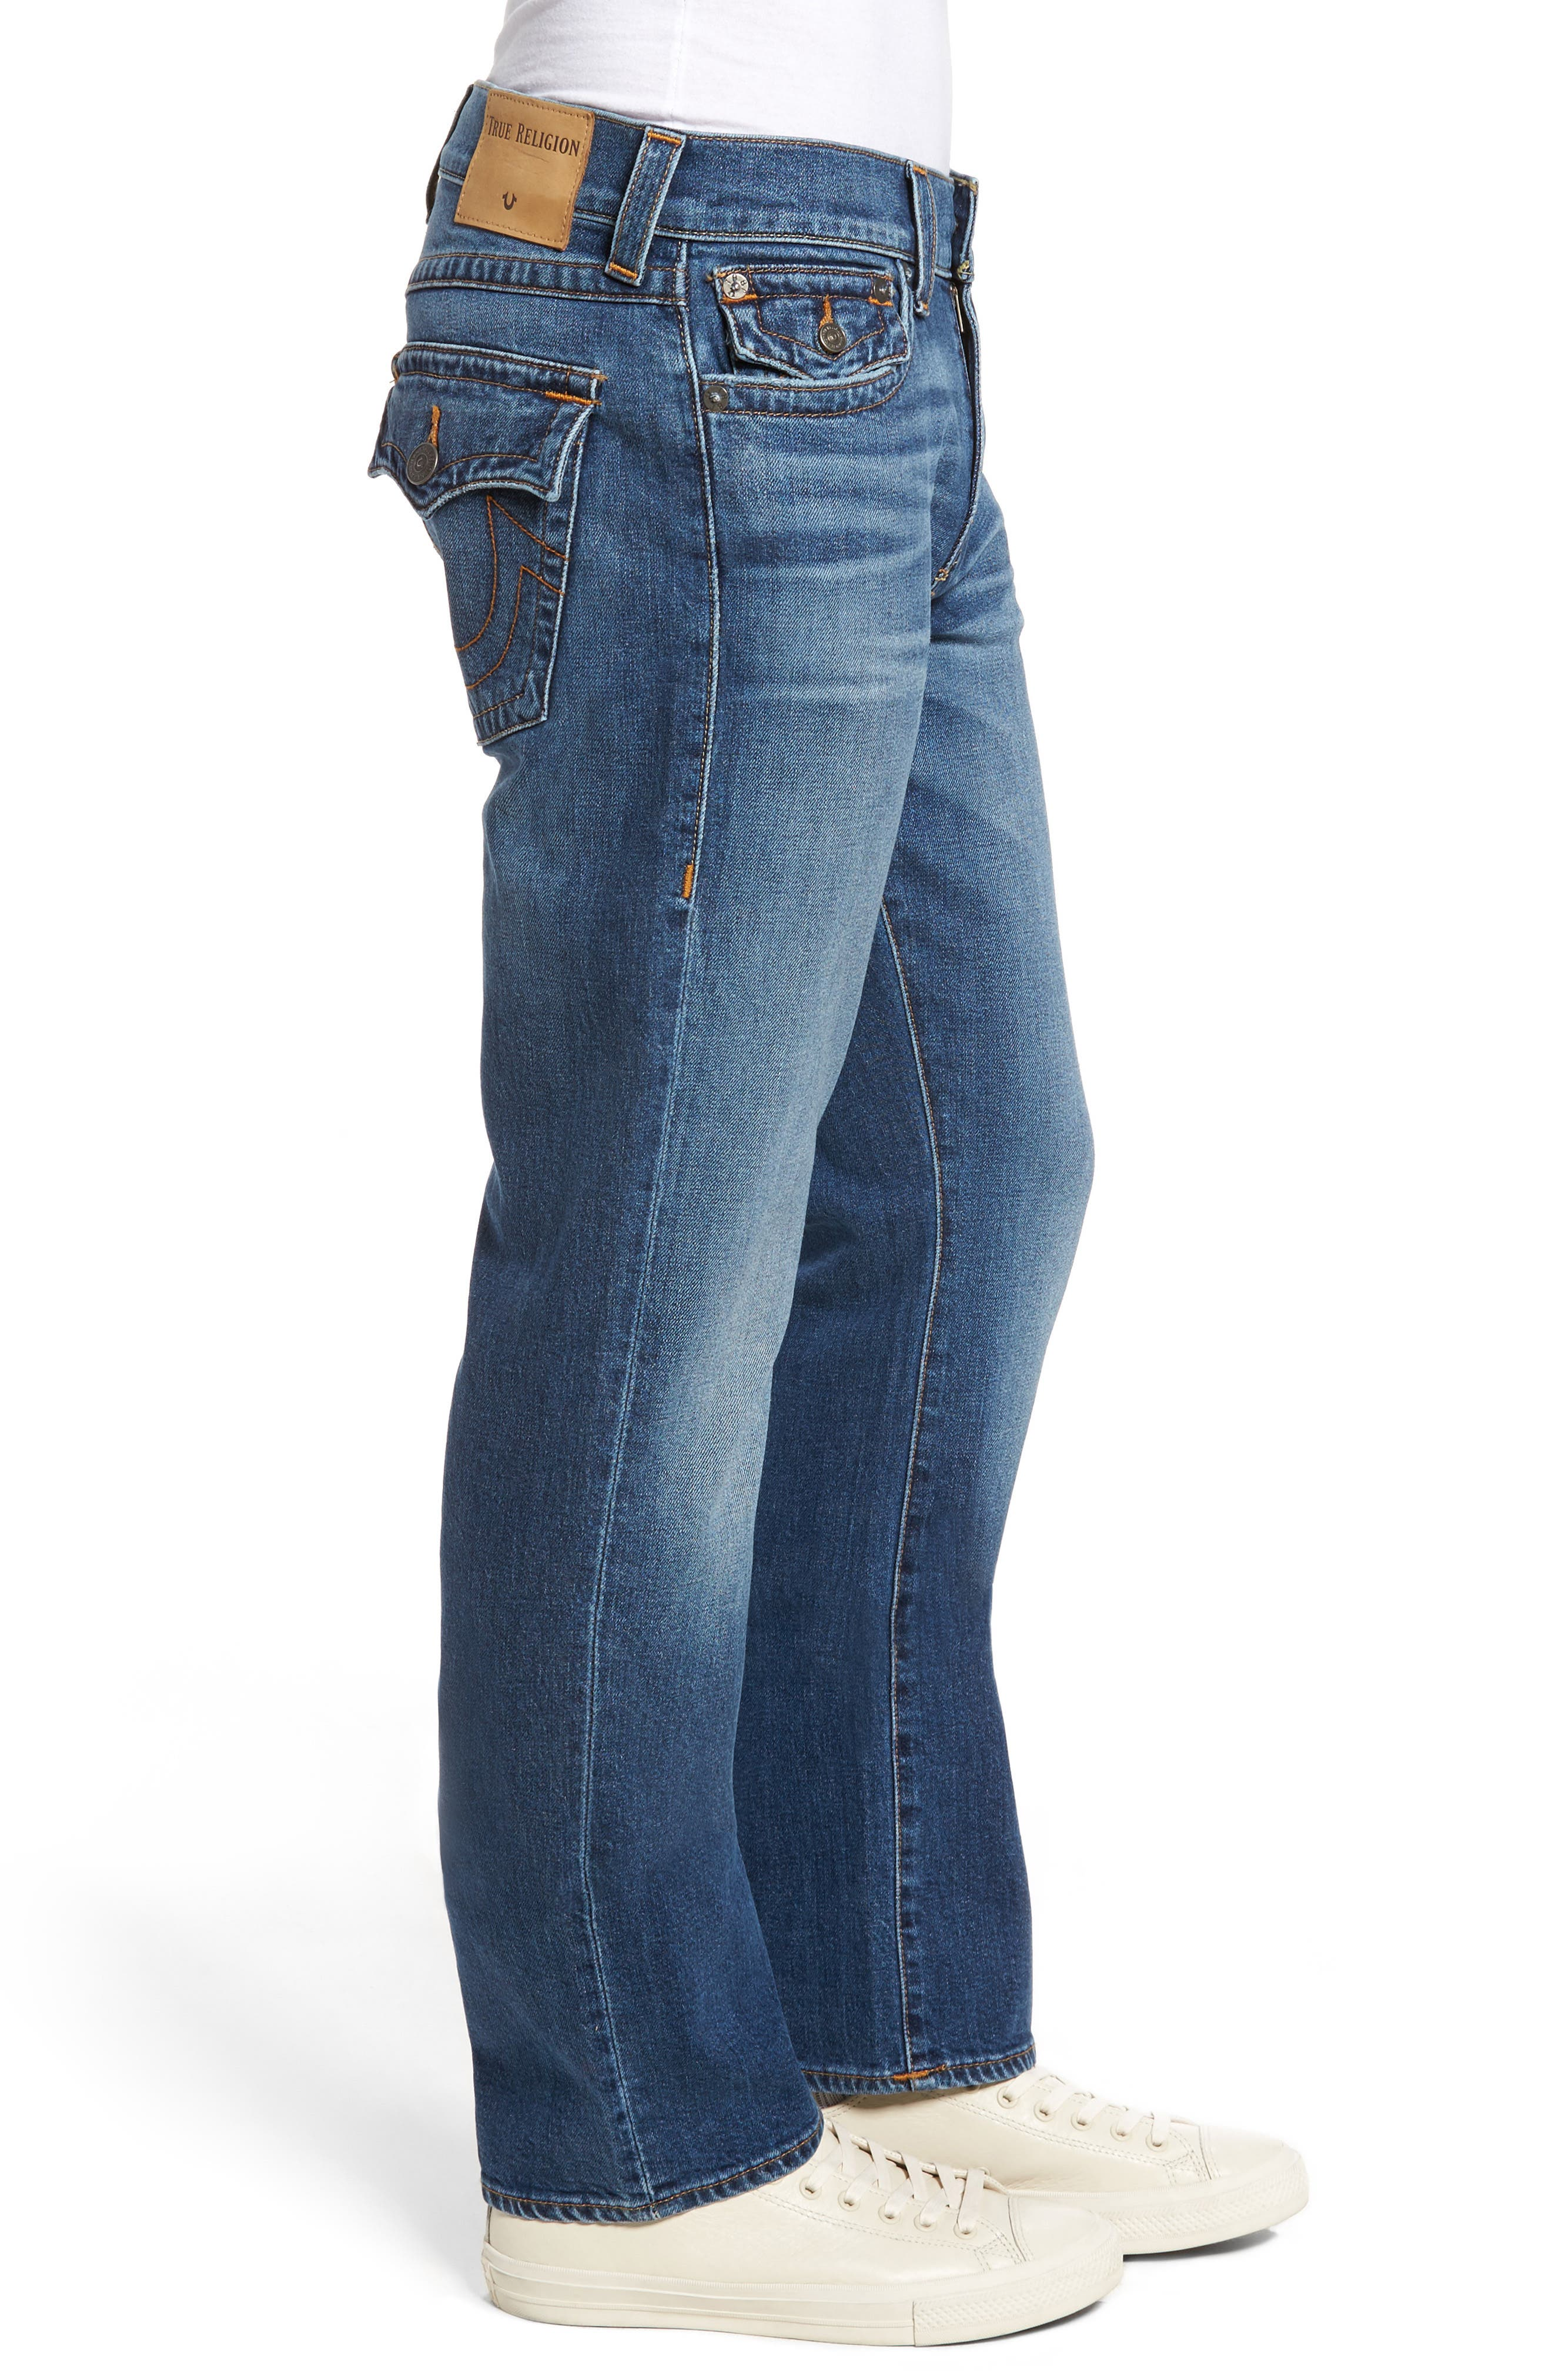 Ricky Relaxed Fit Jeans,                             Alternate thumbnail 3, color,                             Indigo Traveler